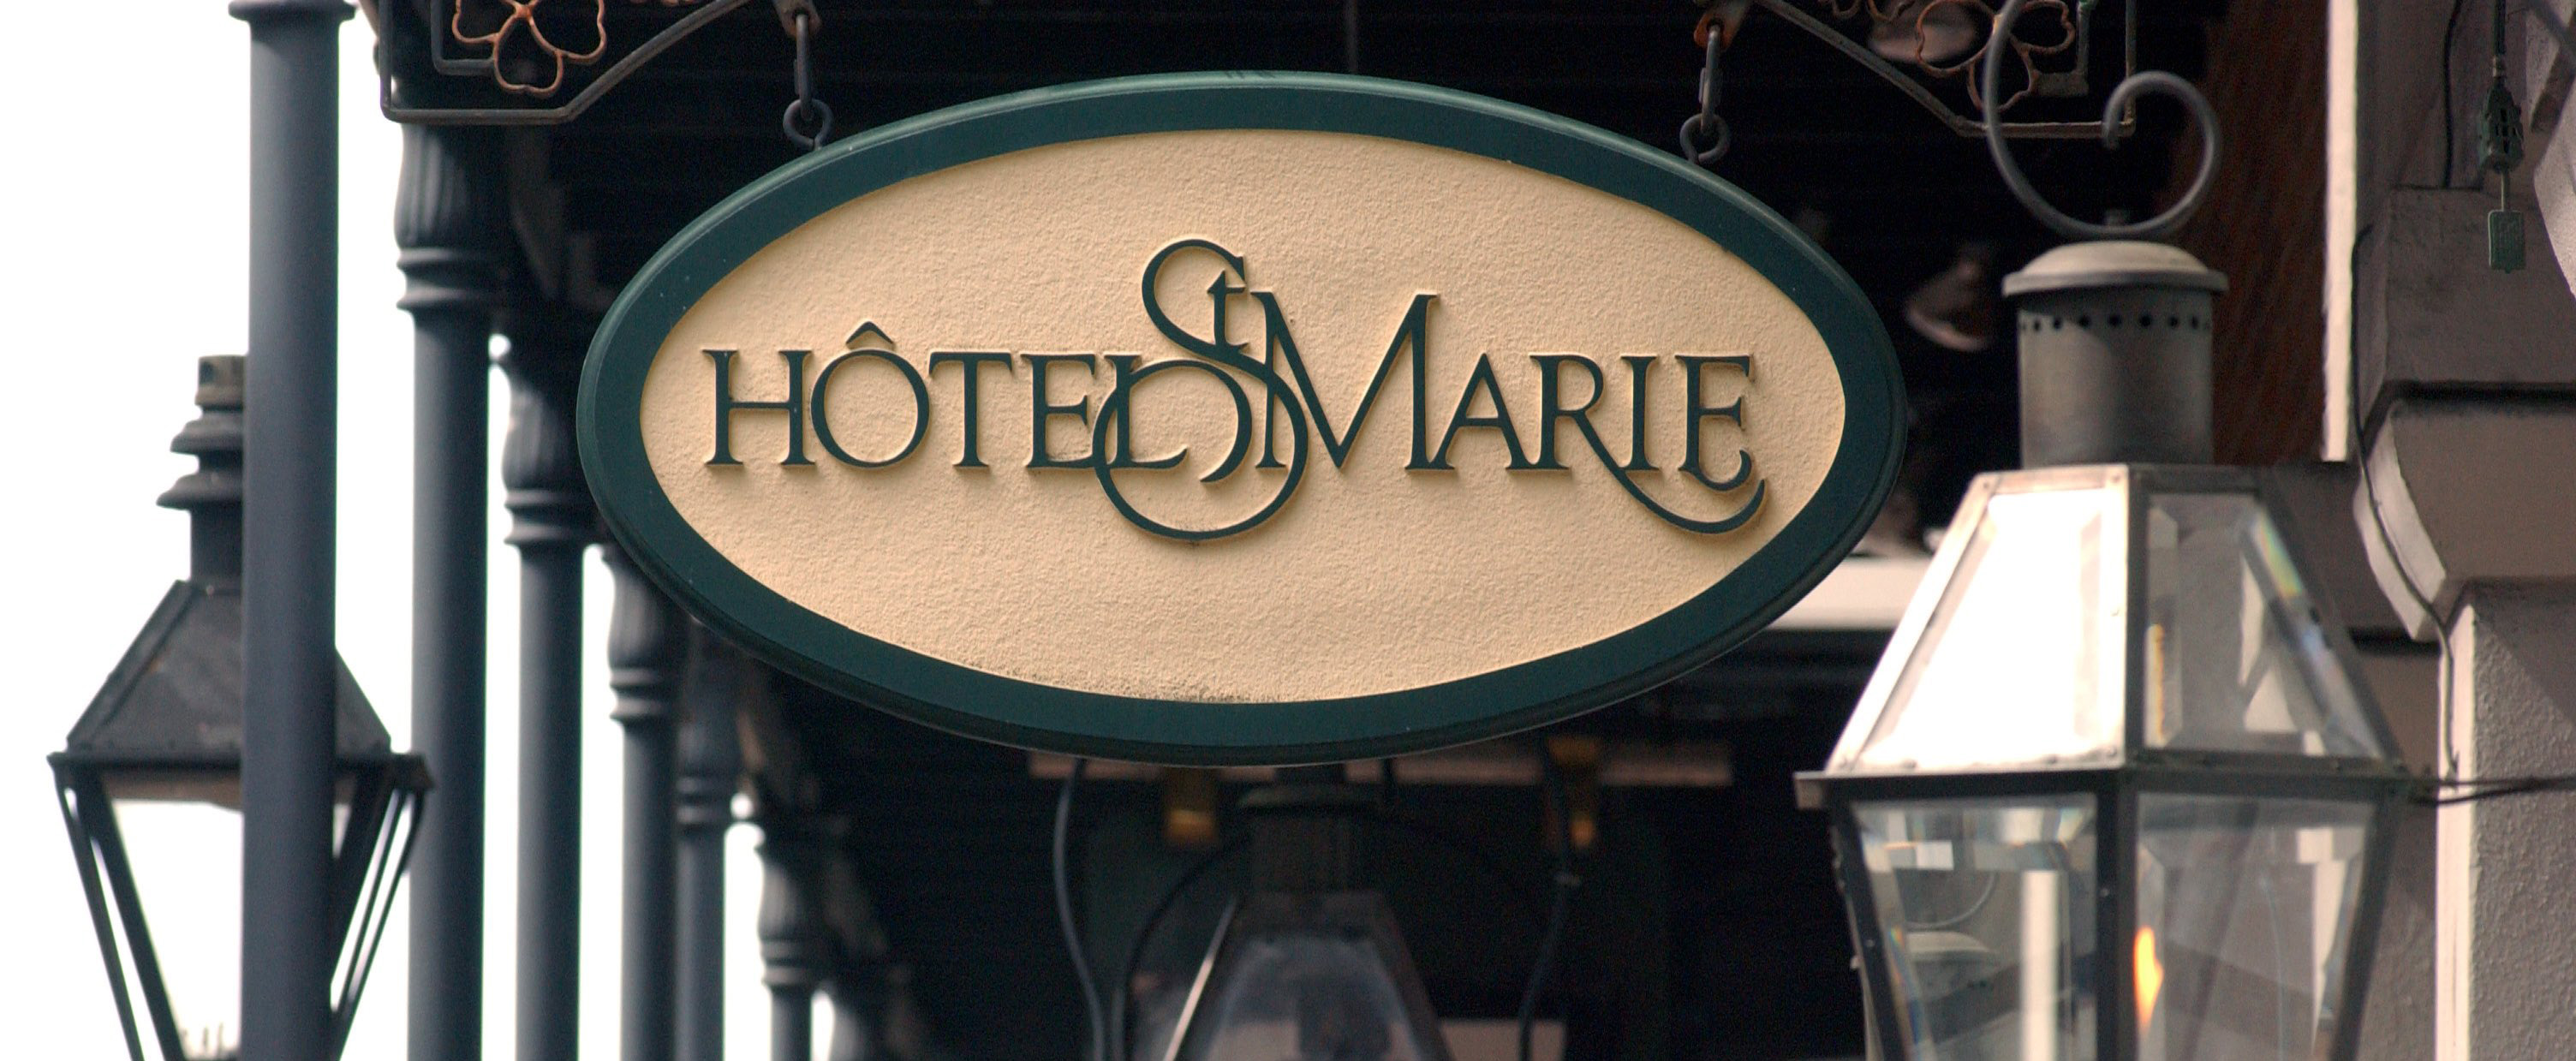 Hotel St Marie French Quarter New Orleans Hotel St Marie A French Quarter Hotel Near You Downtown New Orleans